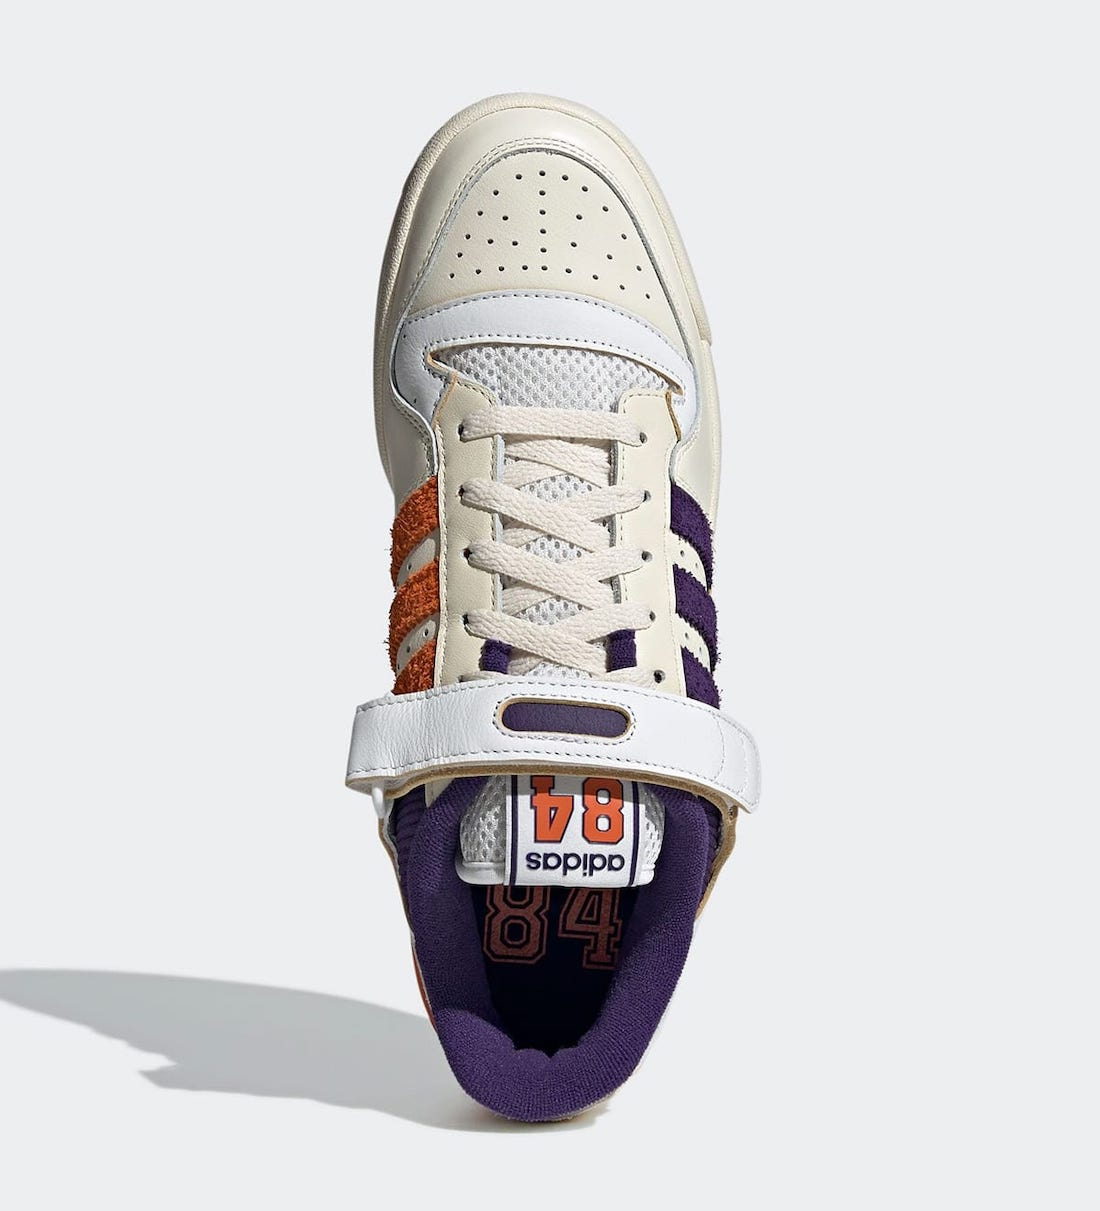 adidas Forum 84 Low Suns GX9049 Release Date